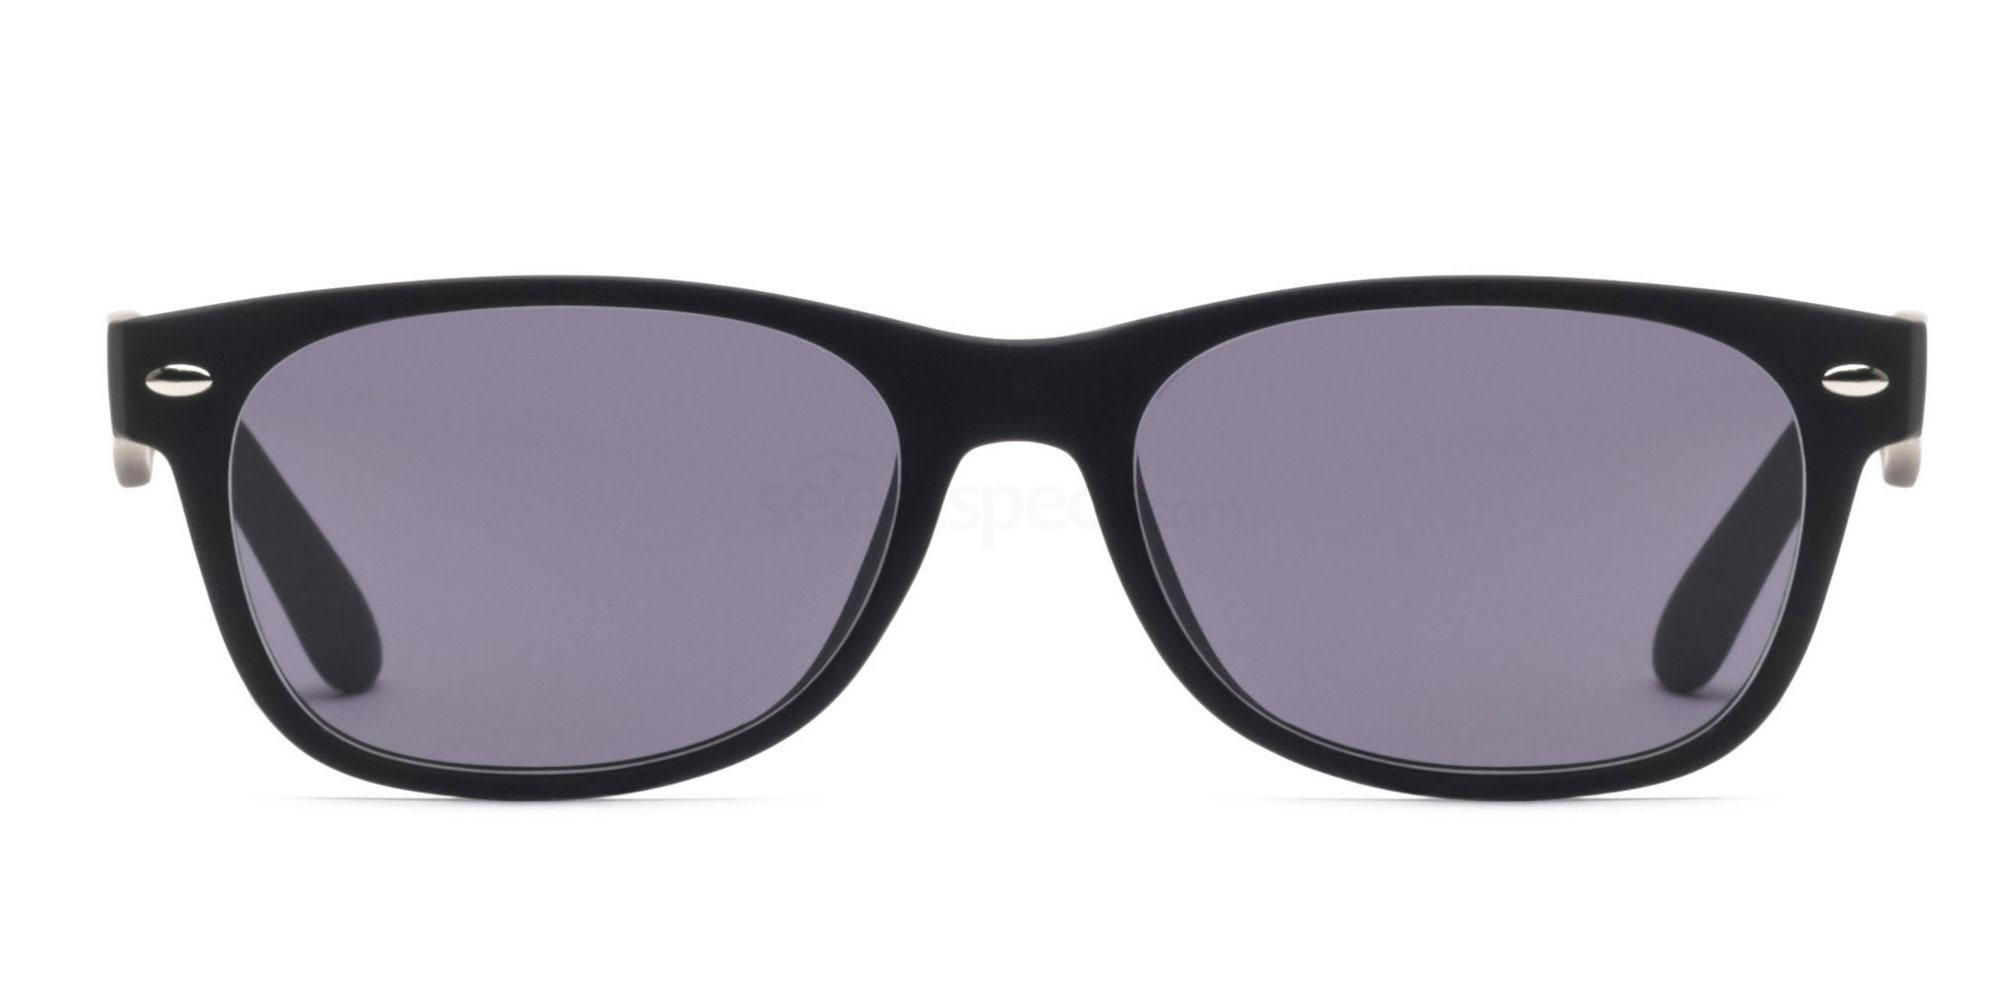 UV400 sunglasses cheap